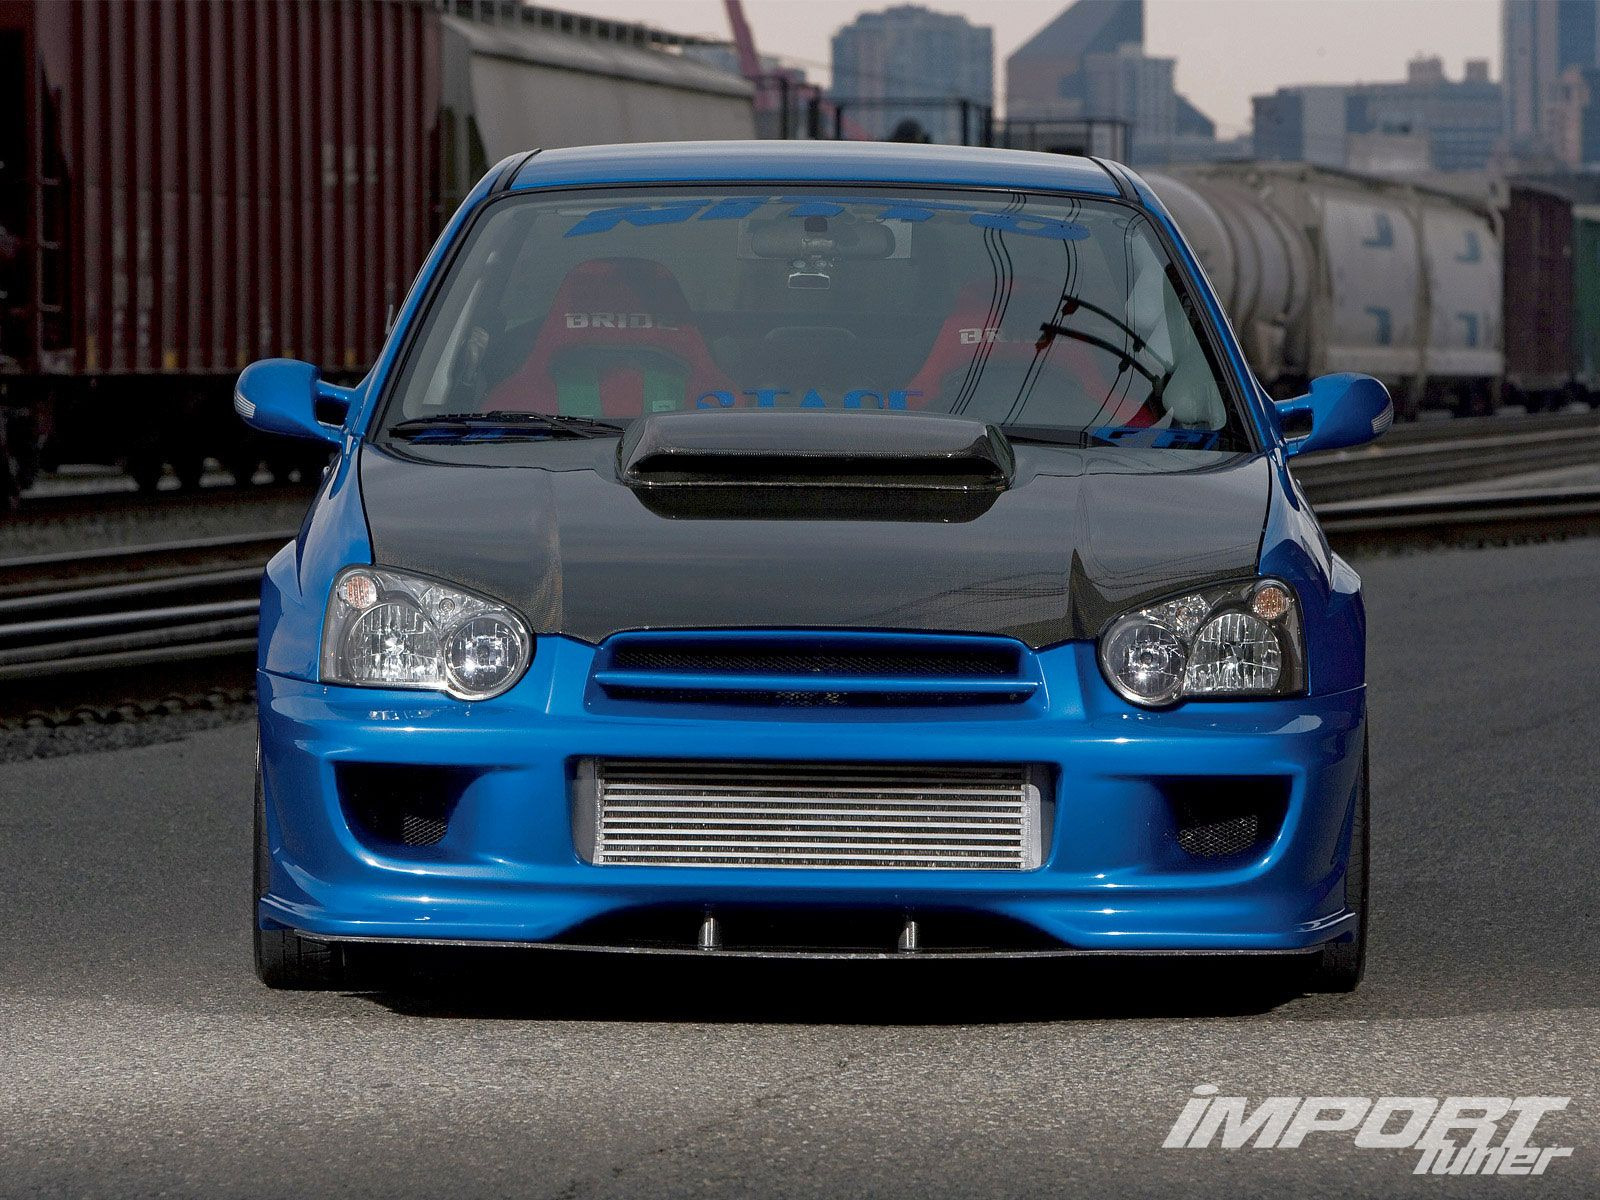 2004 subaru impreza wrx do luck front bumper photo 1 carses 2004 subaru impreza wrx do luck front bumper photo 1 vanachro Gallery